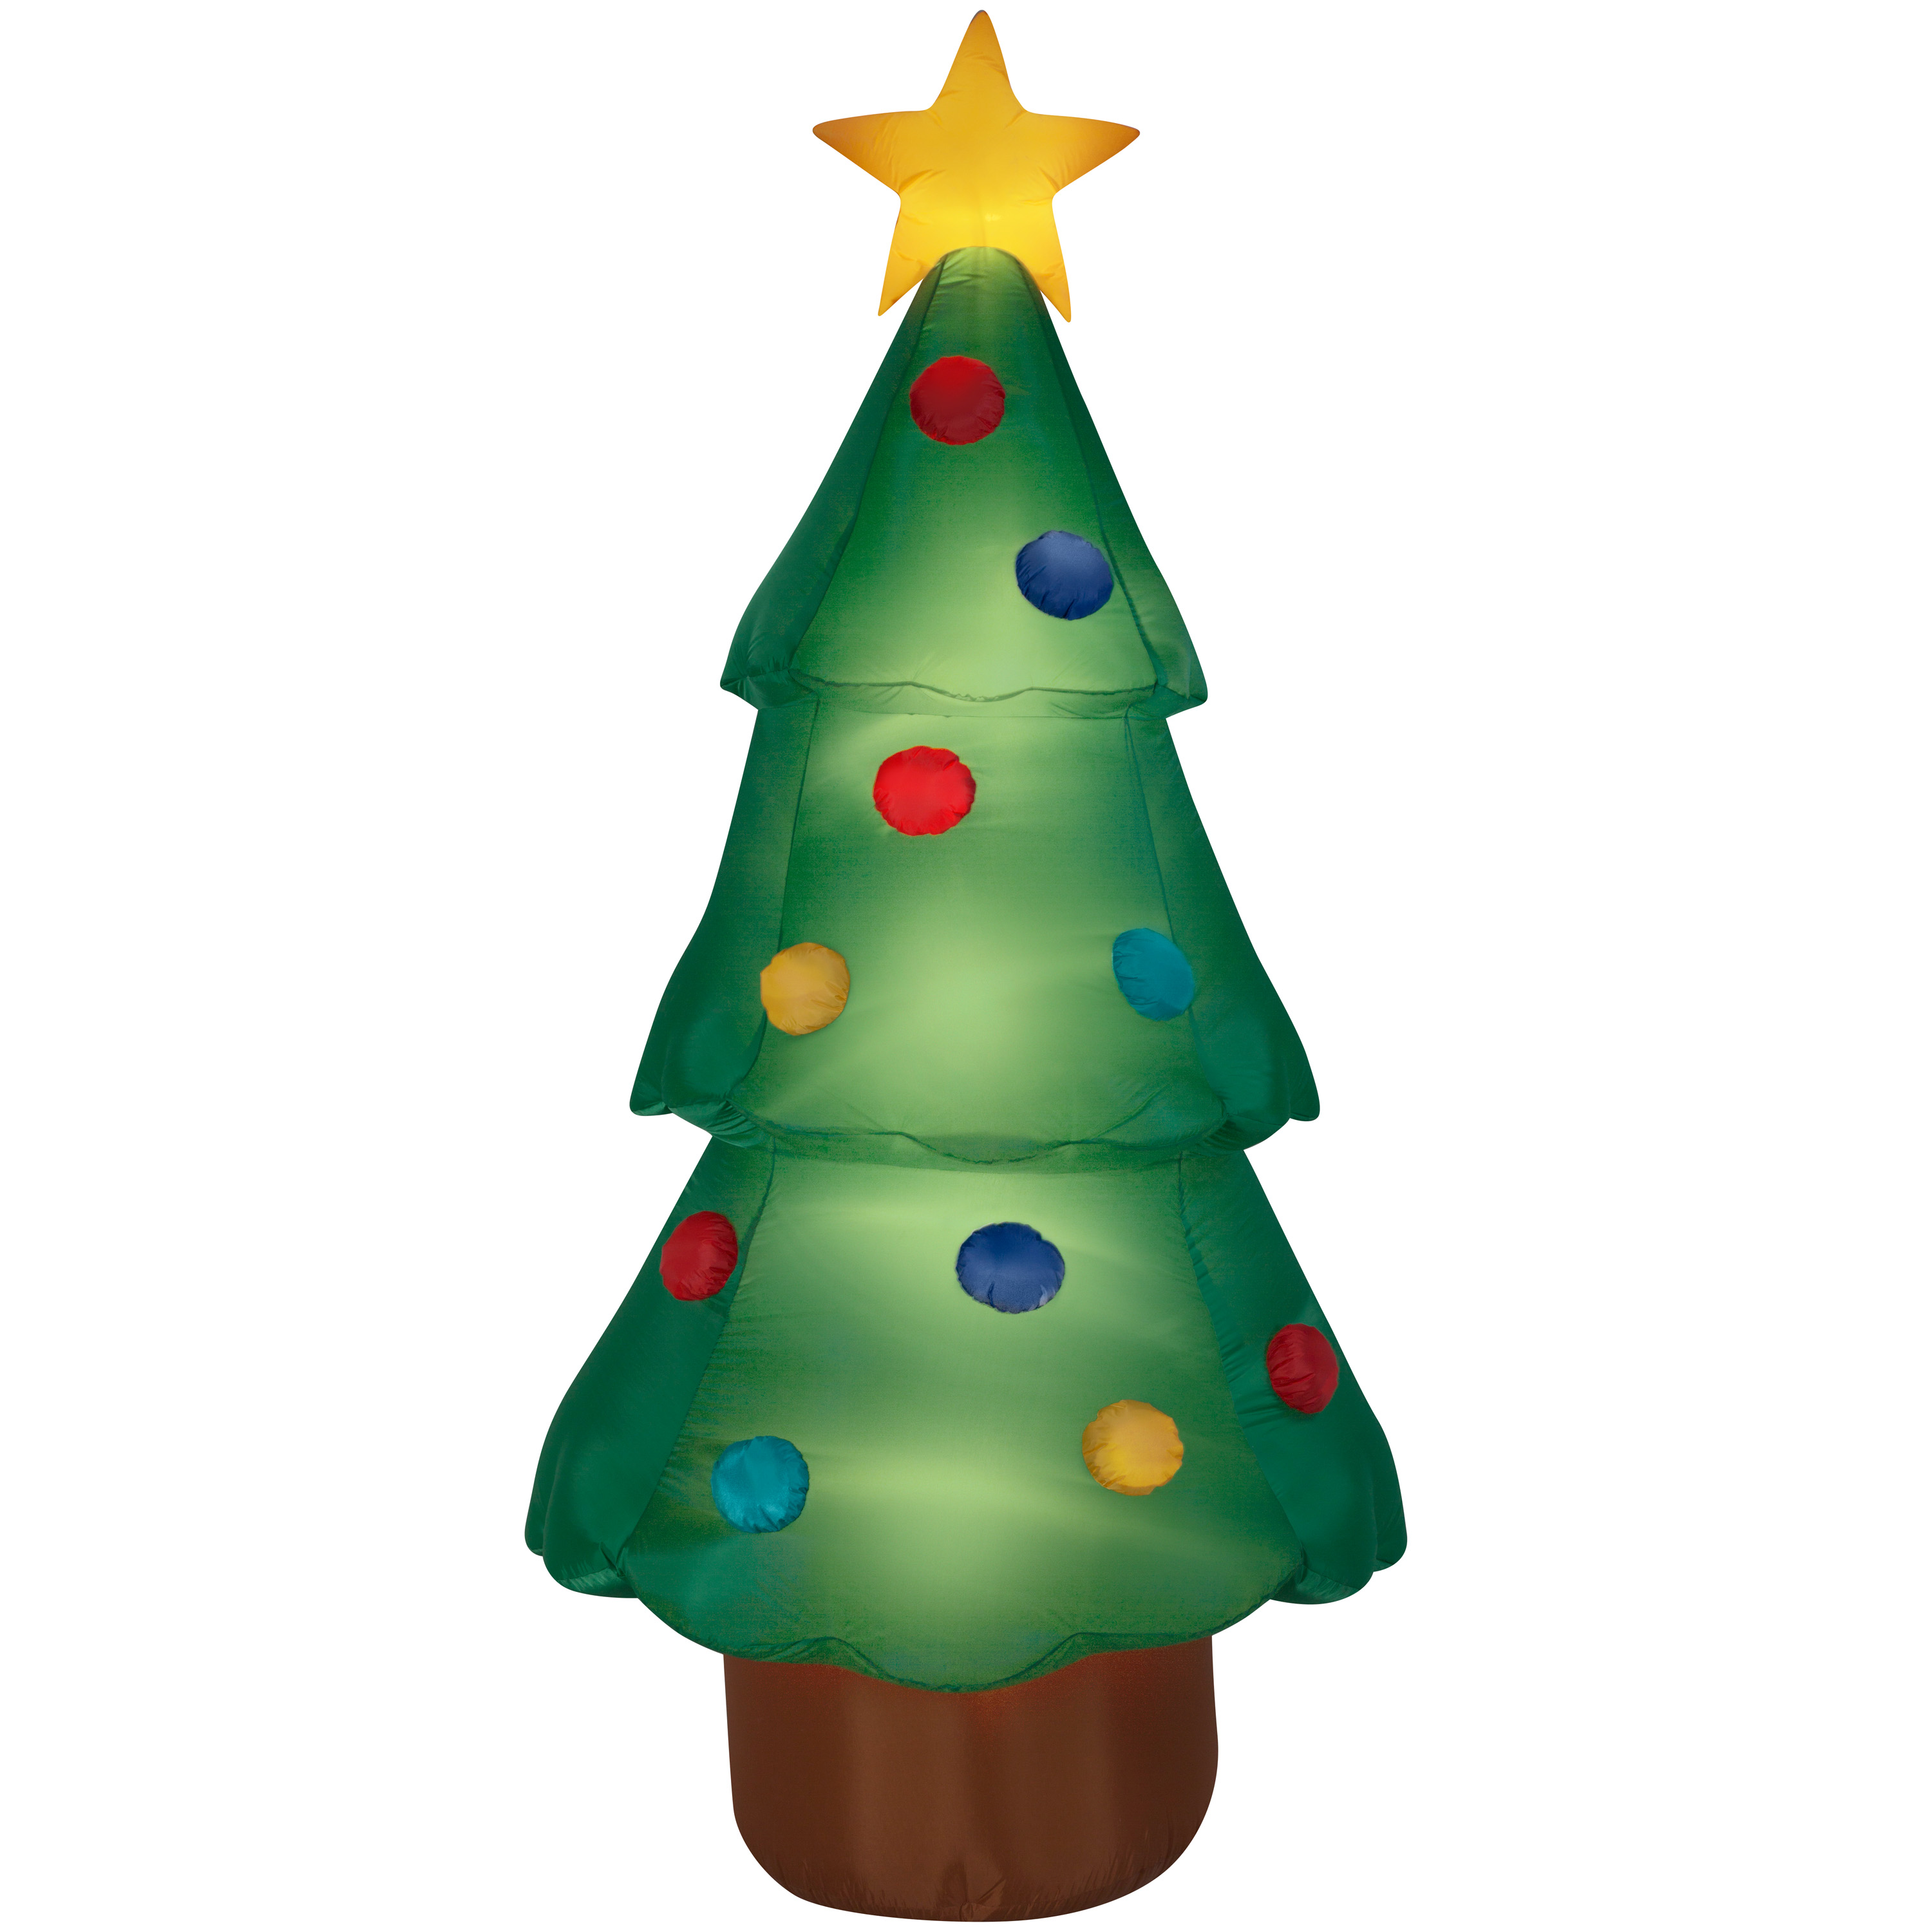 Airblown Inflatable Christmas Tree Giant 10ft Tall By Gemmy Industries  Image 1 Of 2